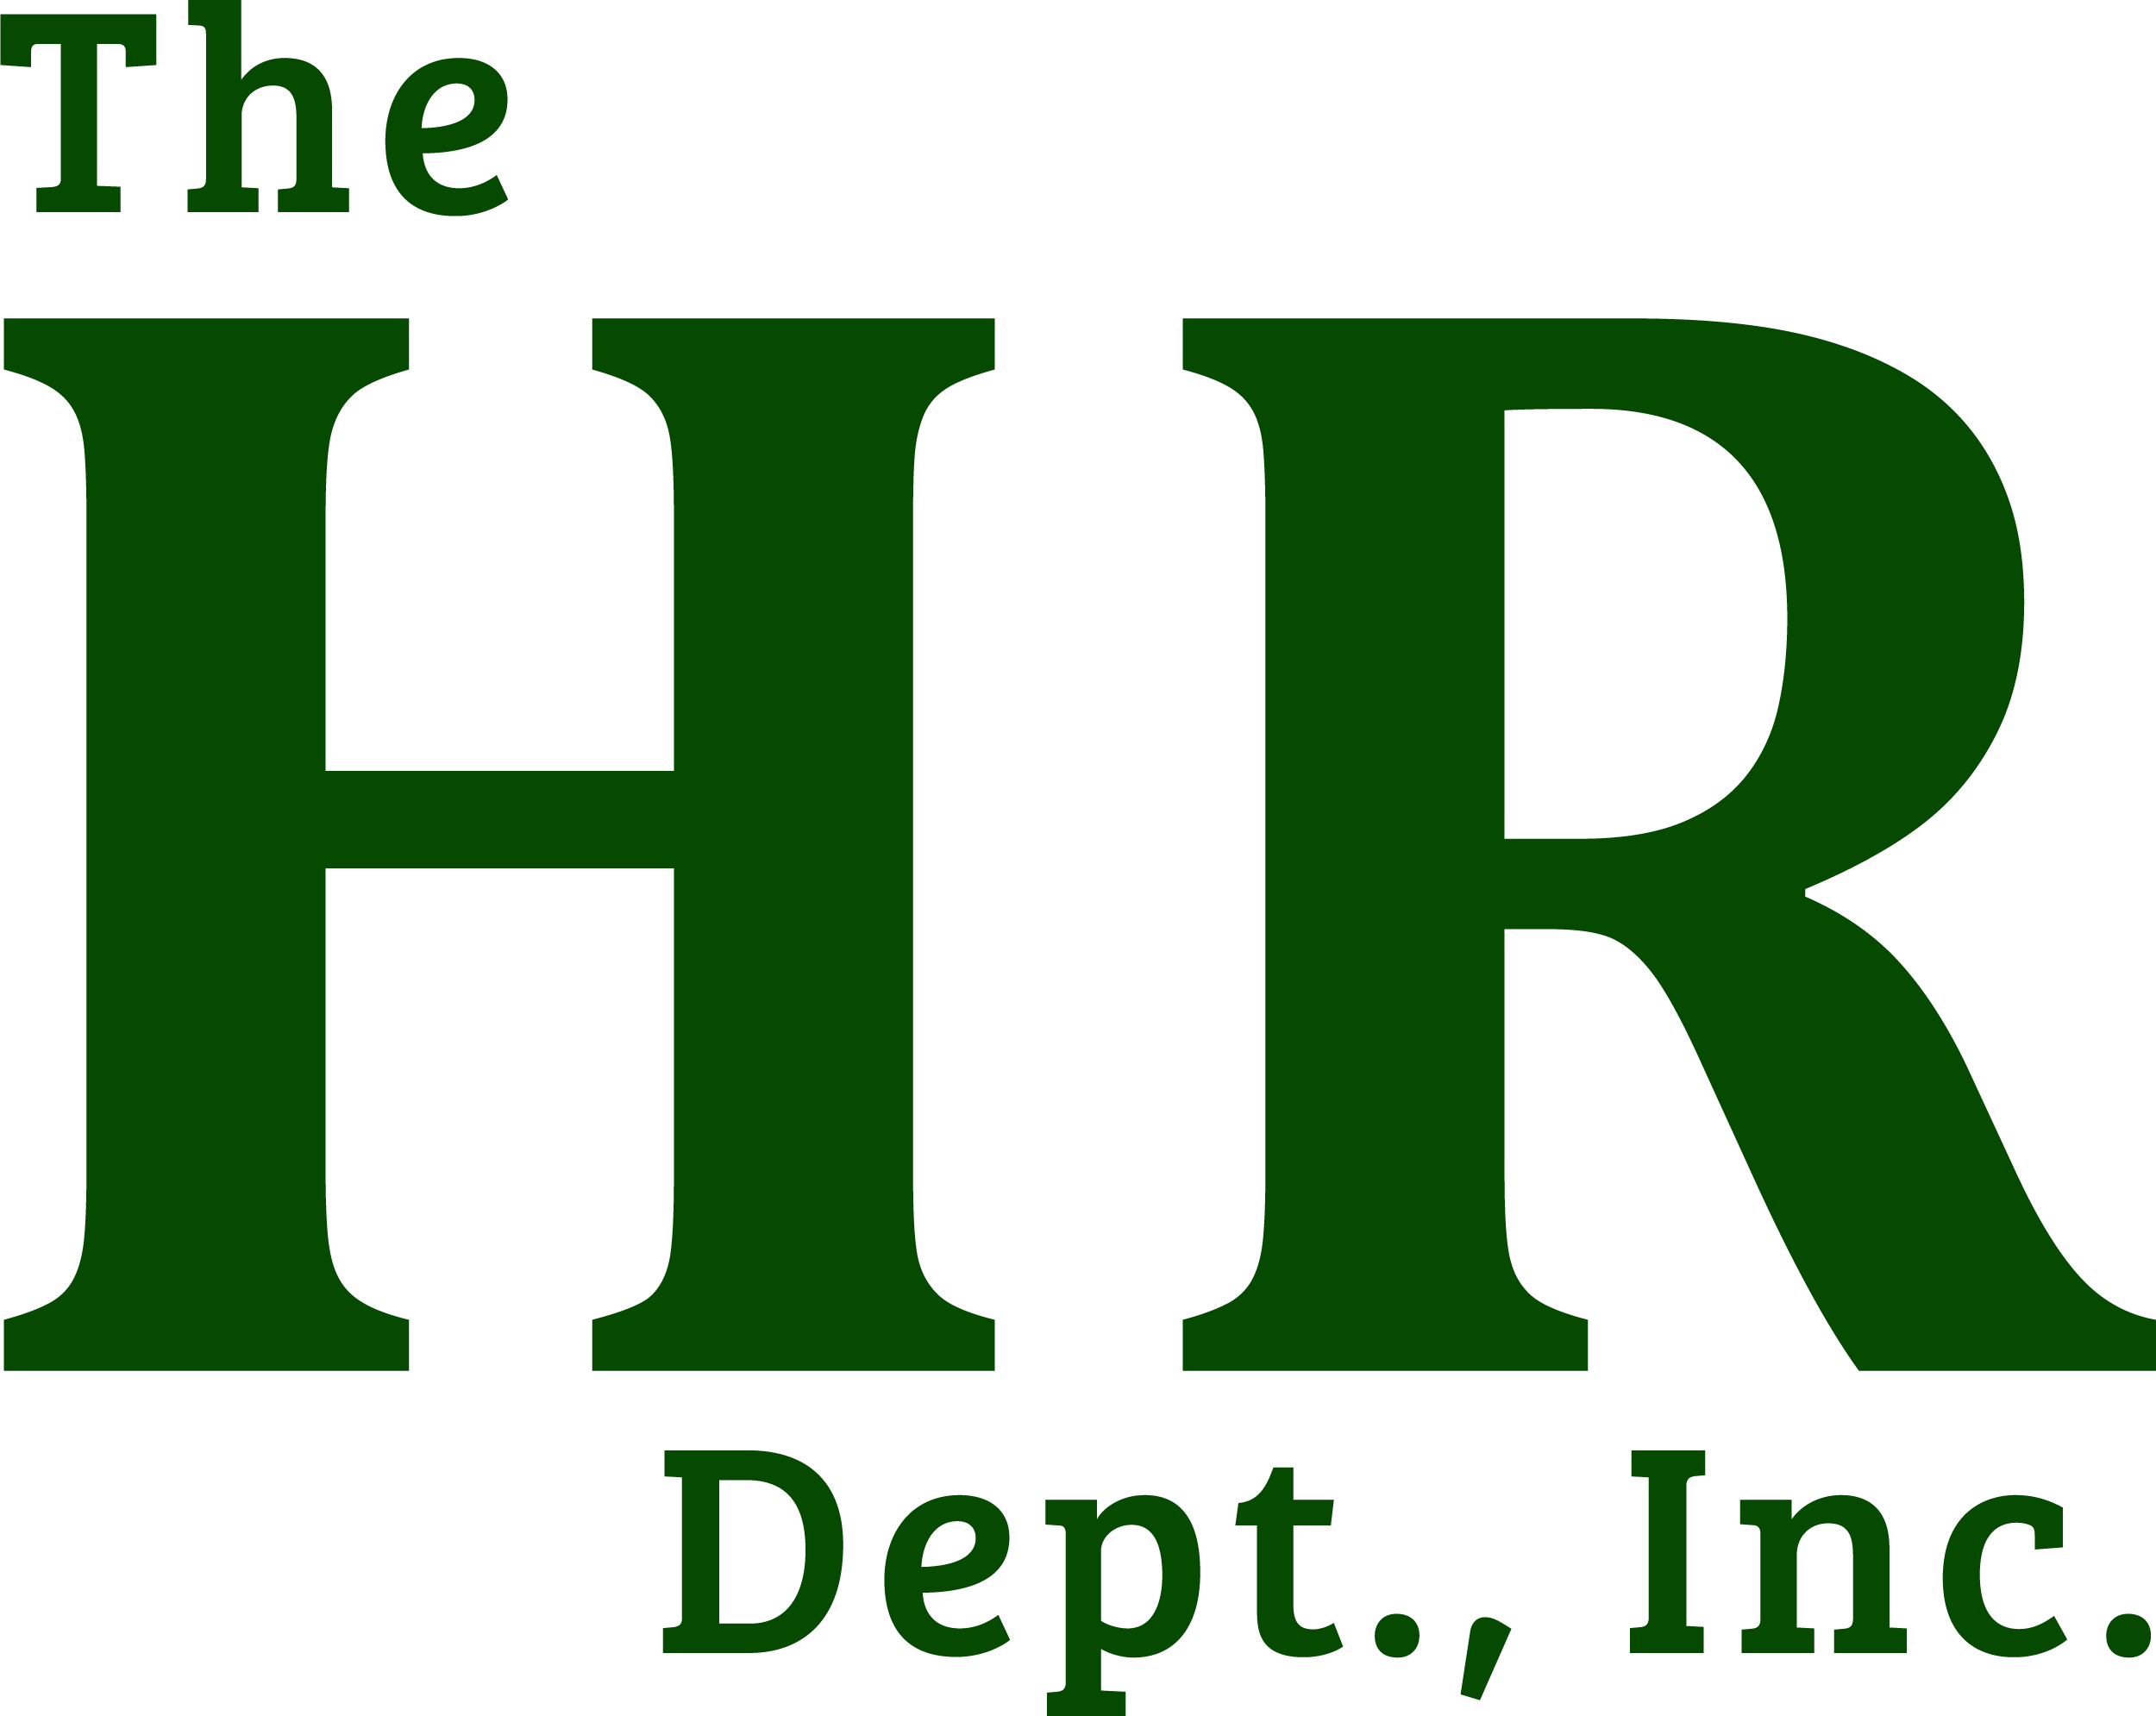 HR Dept., Inc.